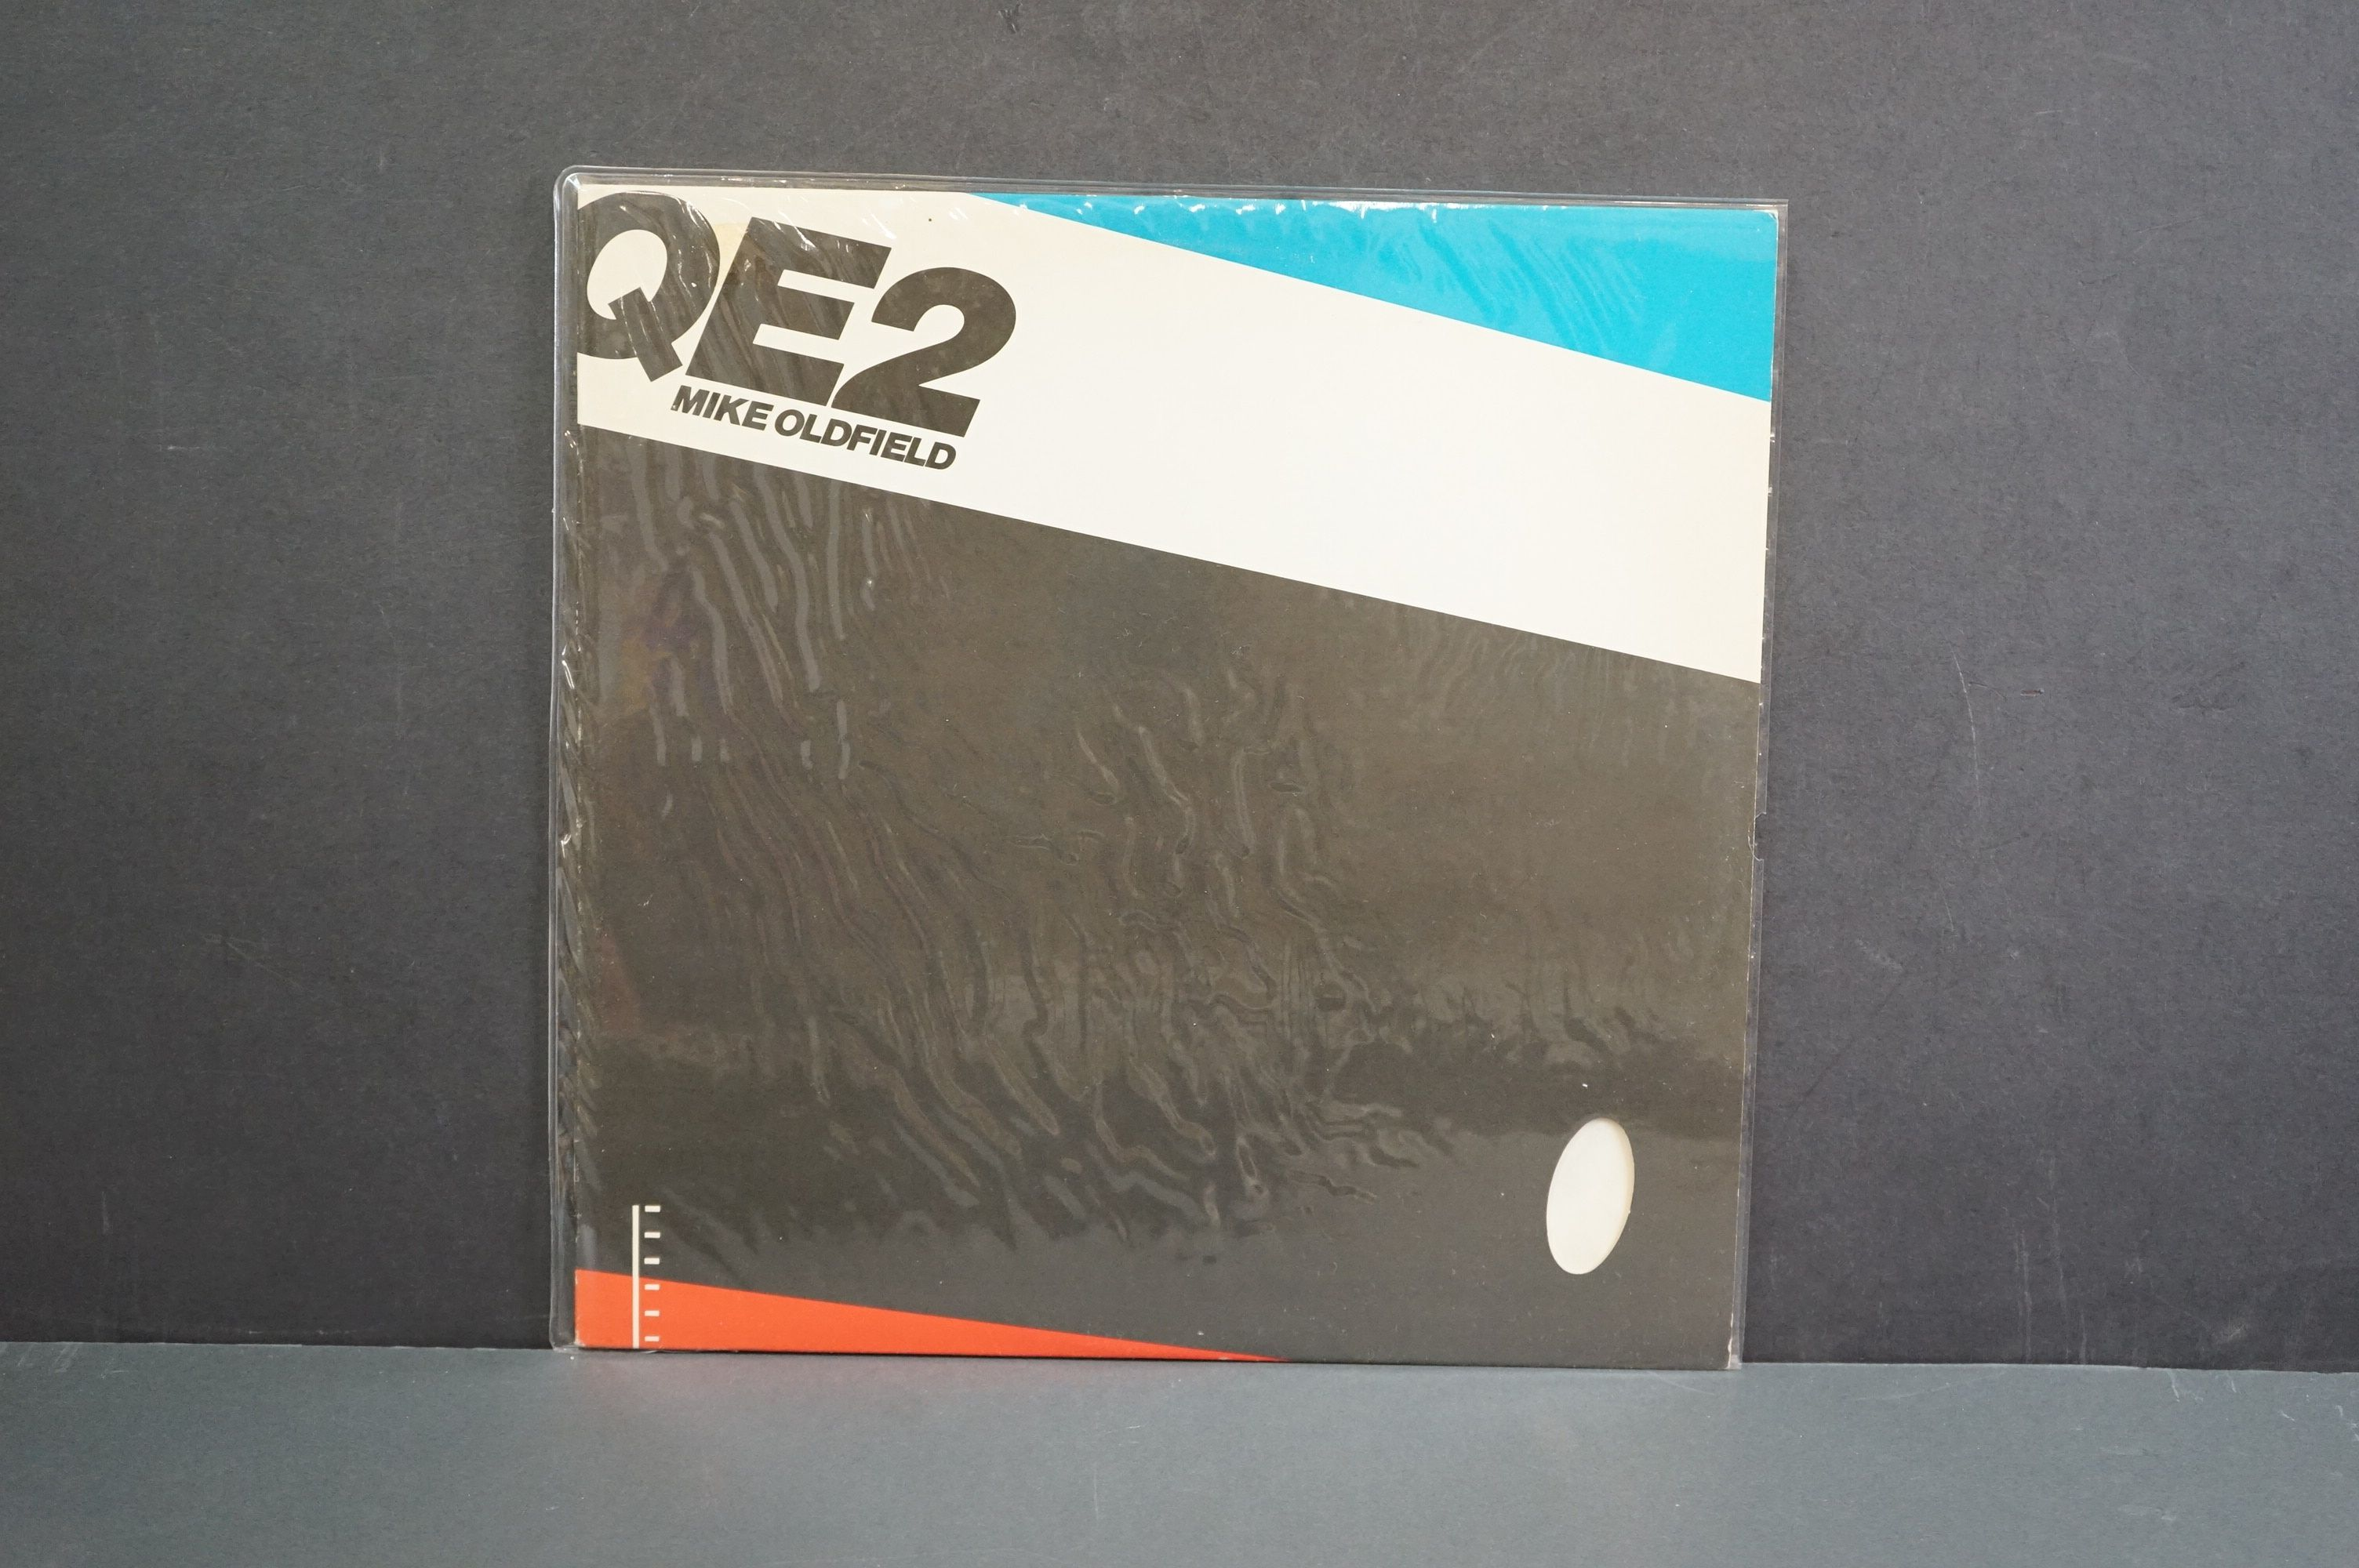 Vinyl - 14 Mike Oldfield LPs to include Tubular Bells, Five Miles Out, Best Of, Discovery etc, - Image 15 of 15